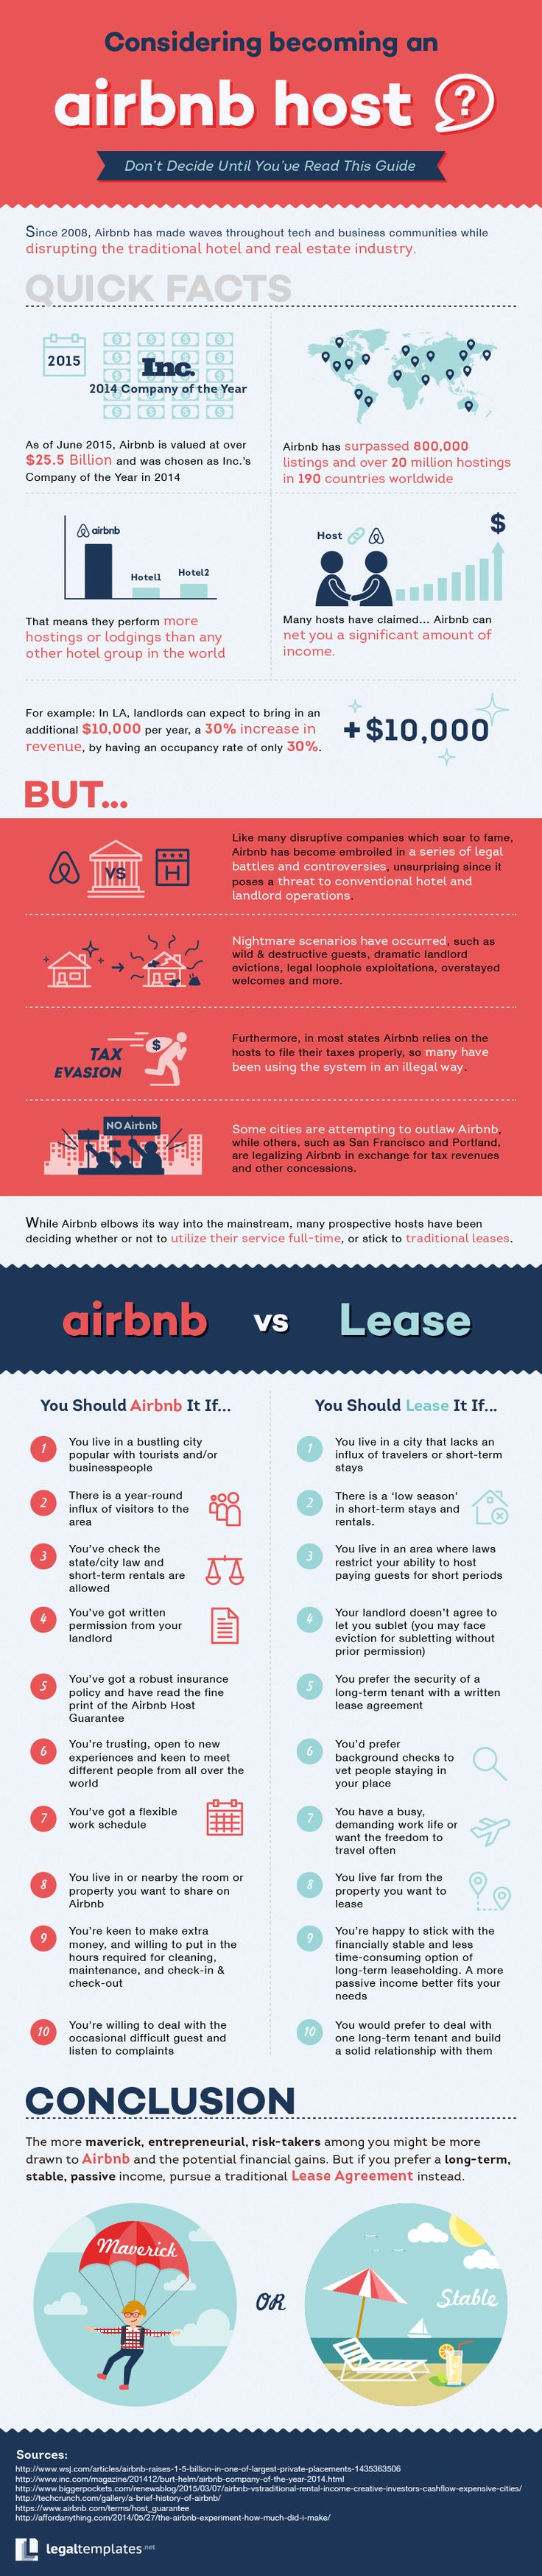 Don't Host on Airbnb Before Reading This Guide